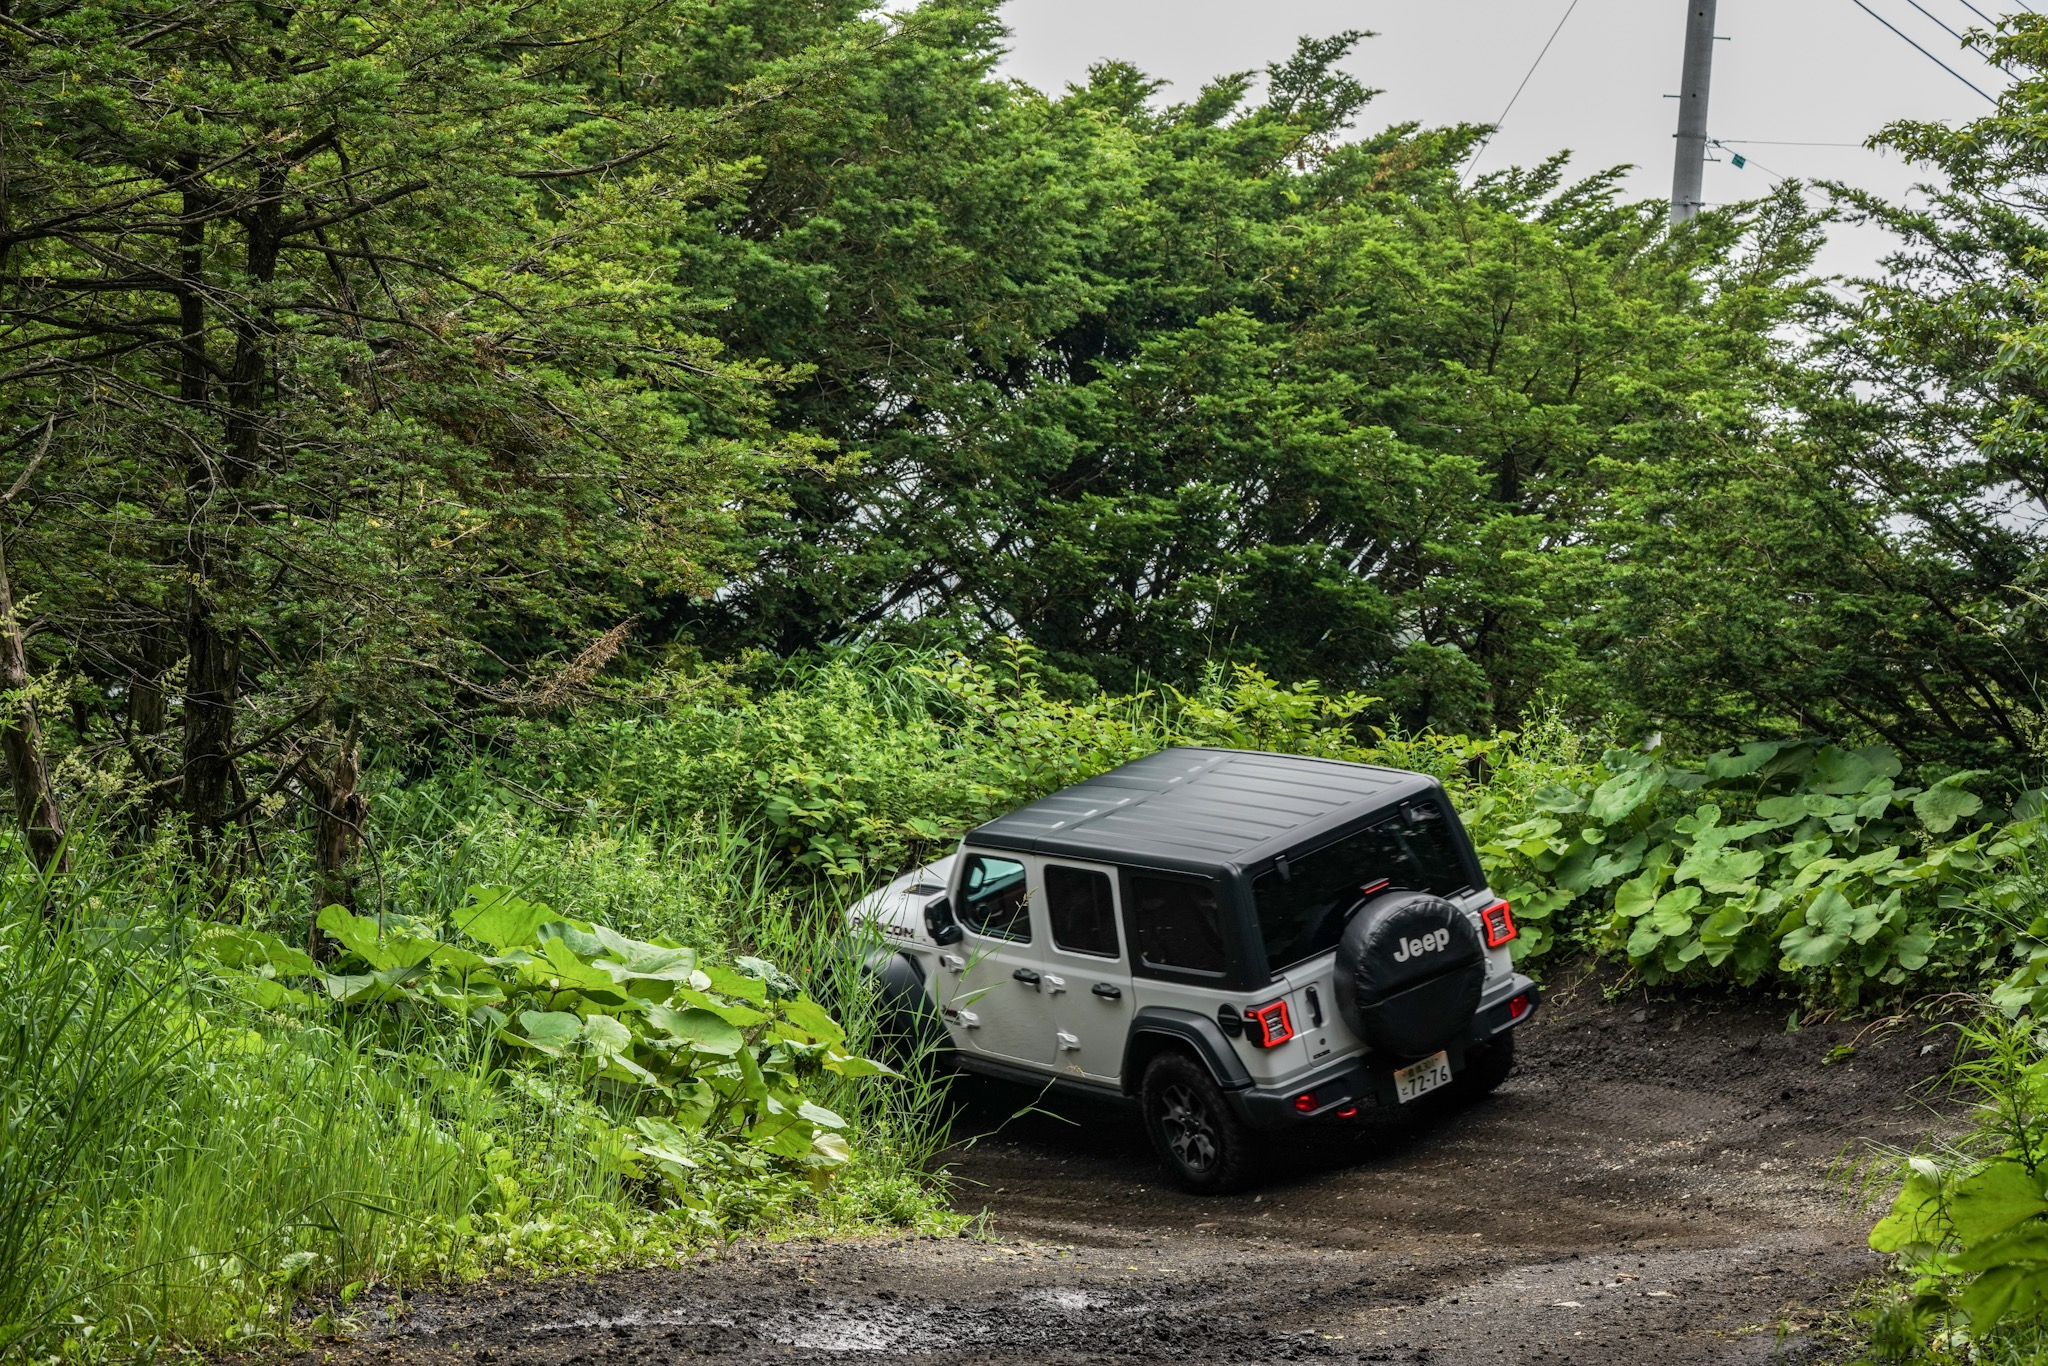 Jeep All Trail Rated試乗会